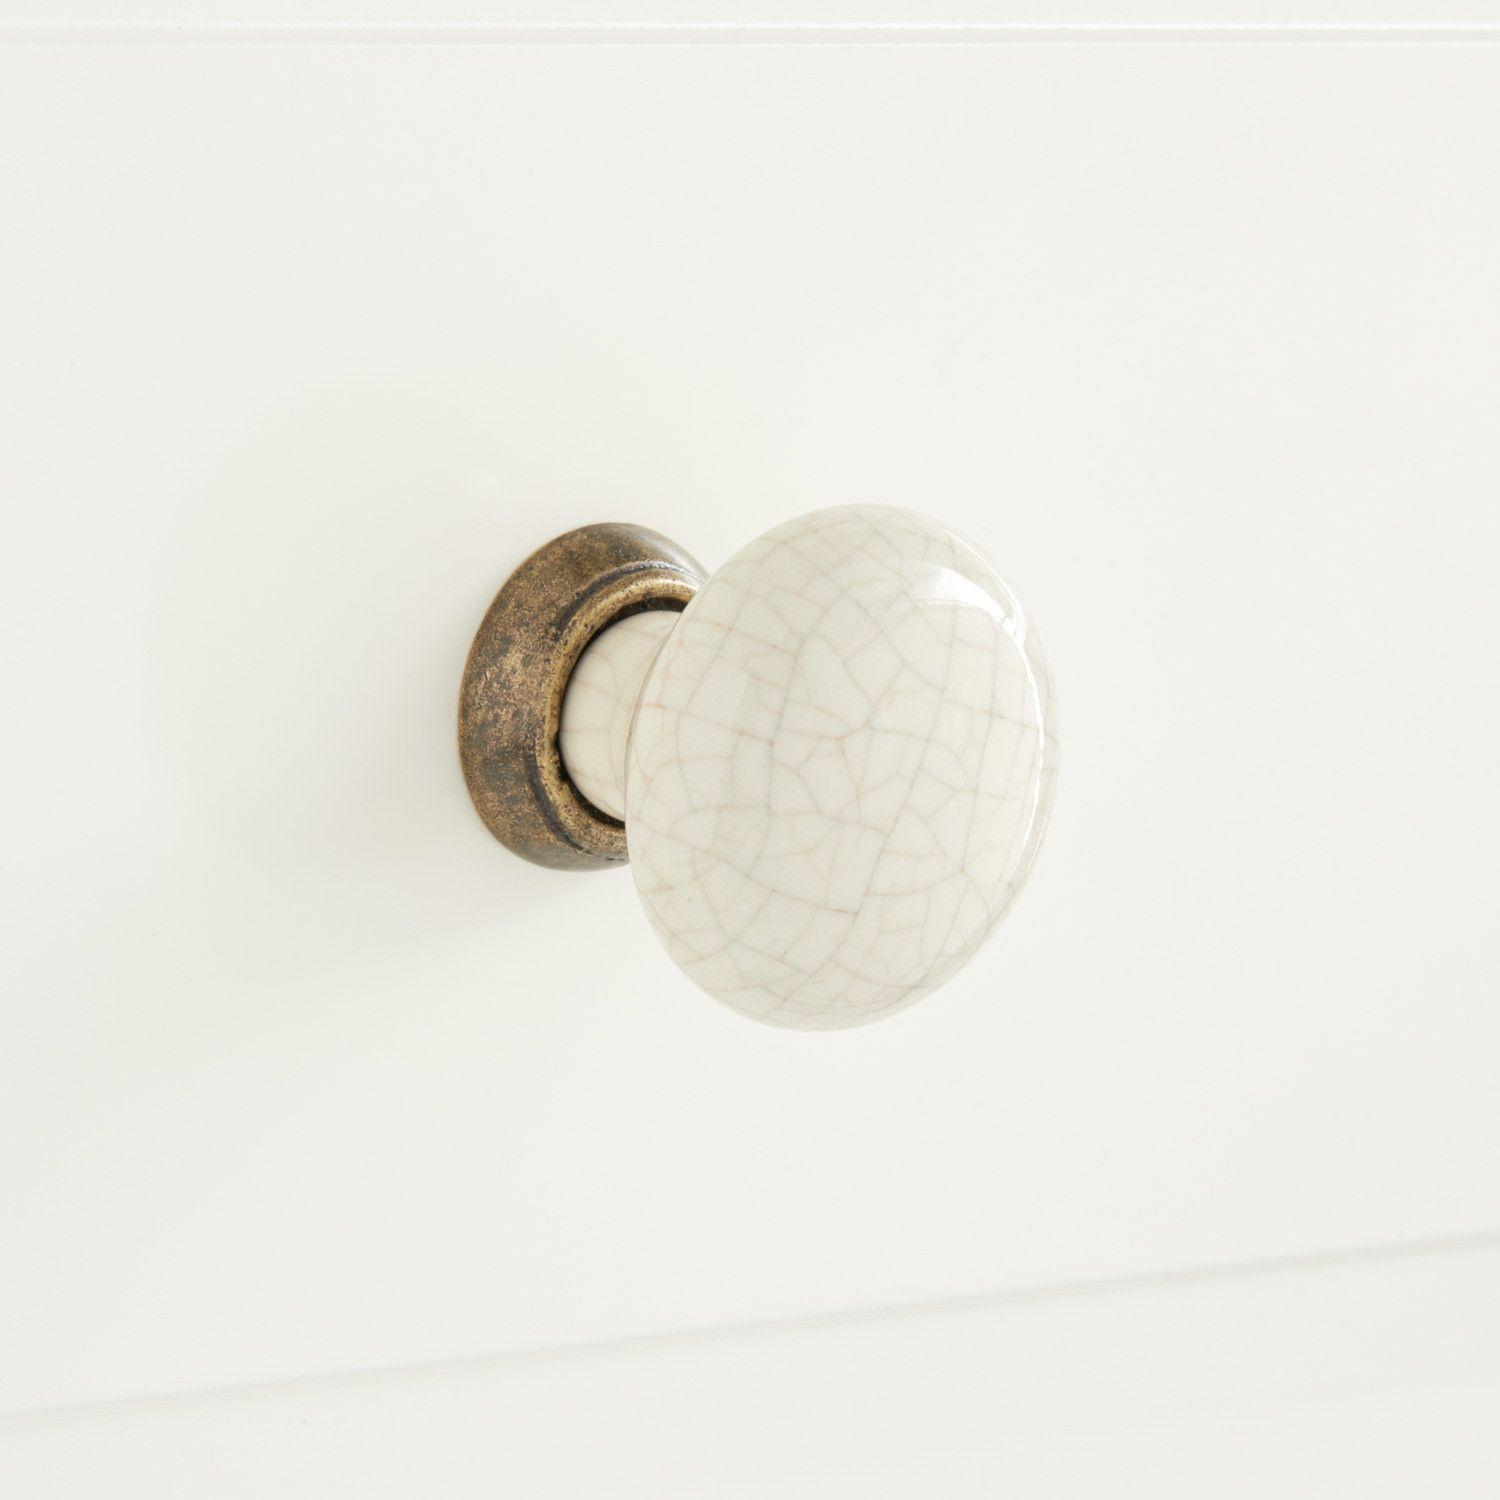 Crackle Finish Porcelain Cabinet Knobs with Silver//Gold Accents